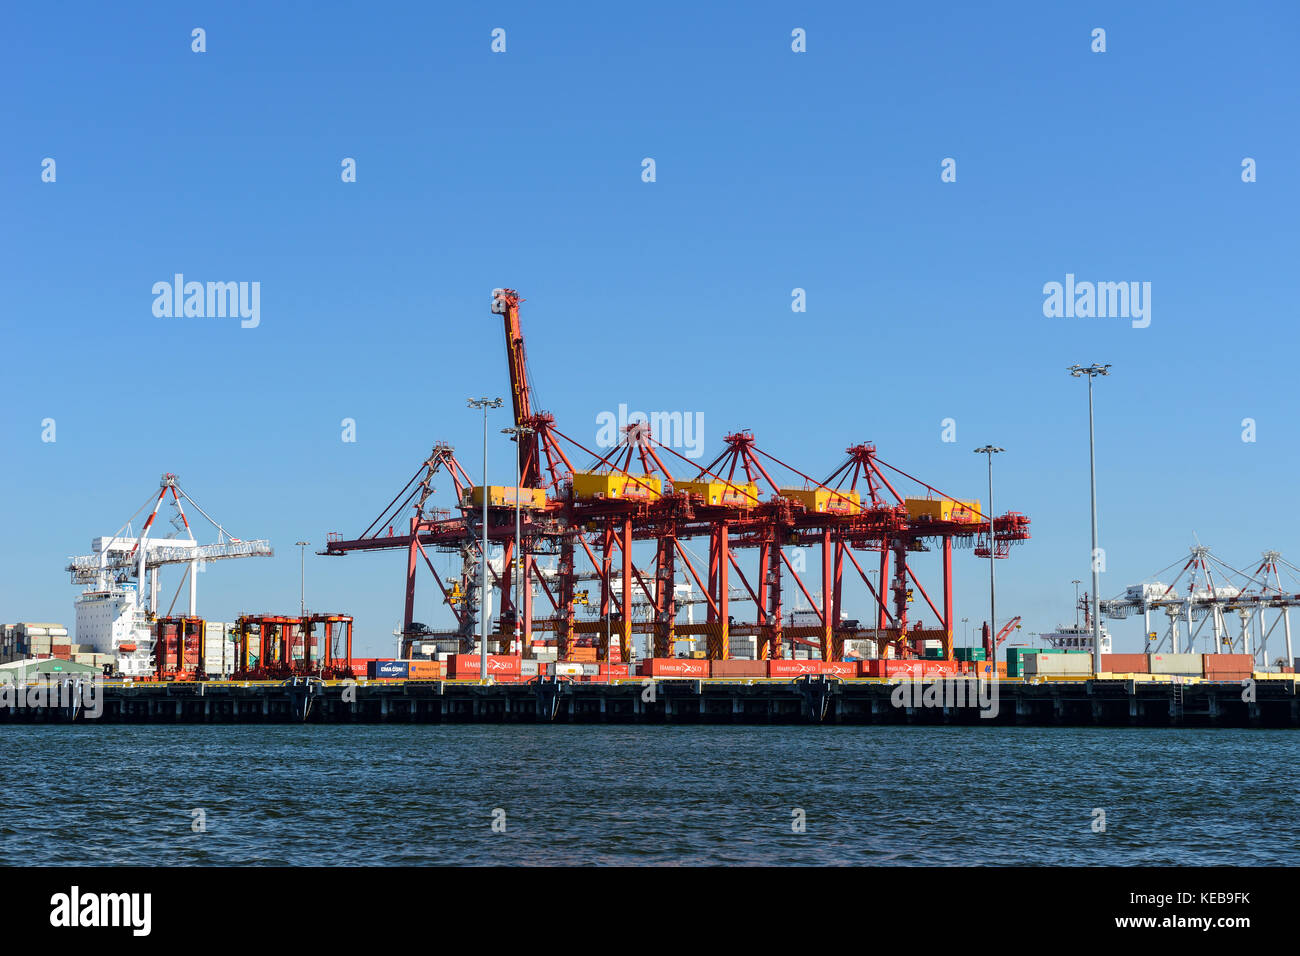 Cranes at West Melbourne container shipping docks on Yarra River, Melbourne, Victoria, Australia - Stock Image